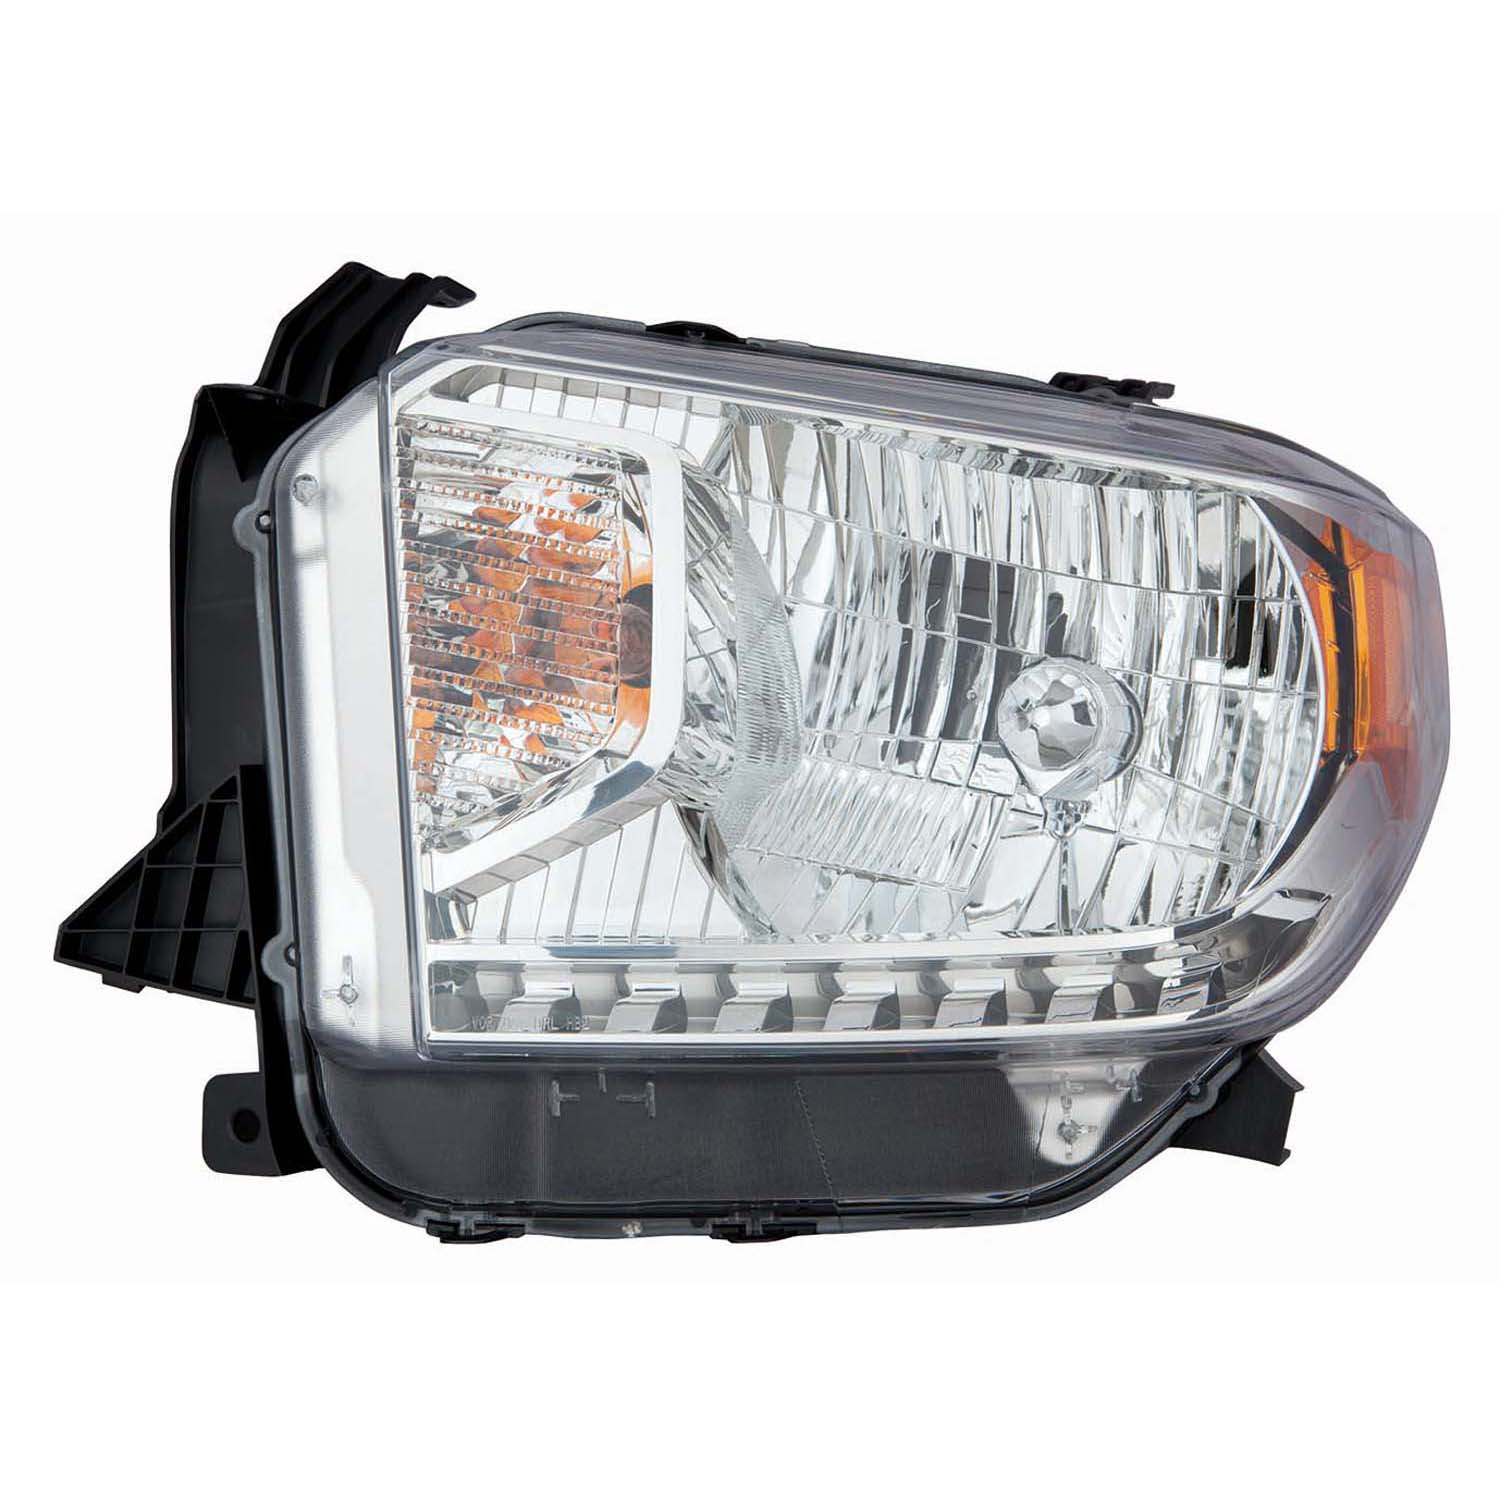 TUNDRA 14-17 Left Headlight Assembly HALOGEN Without LEVELING